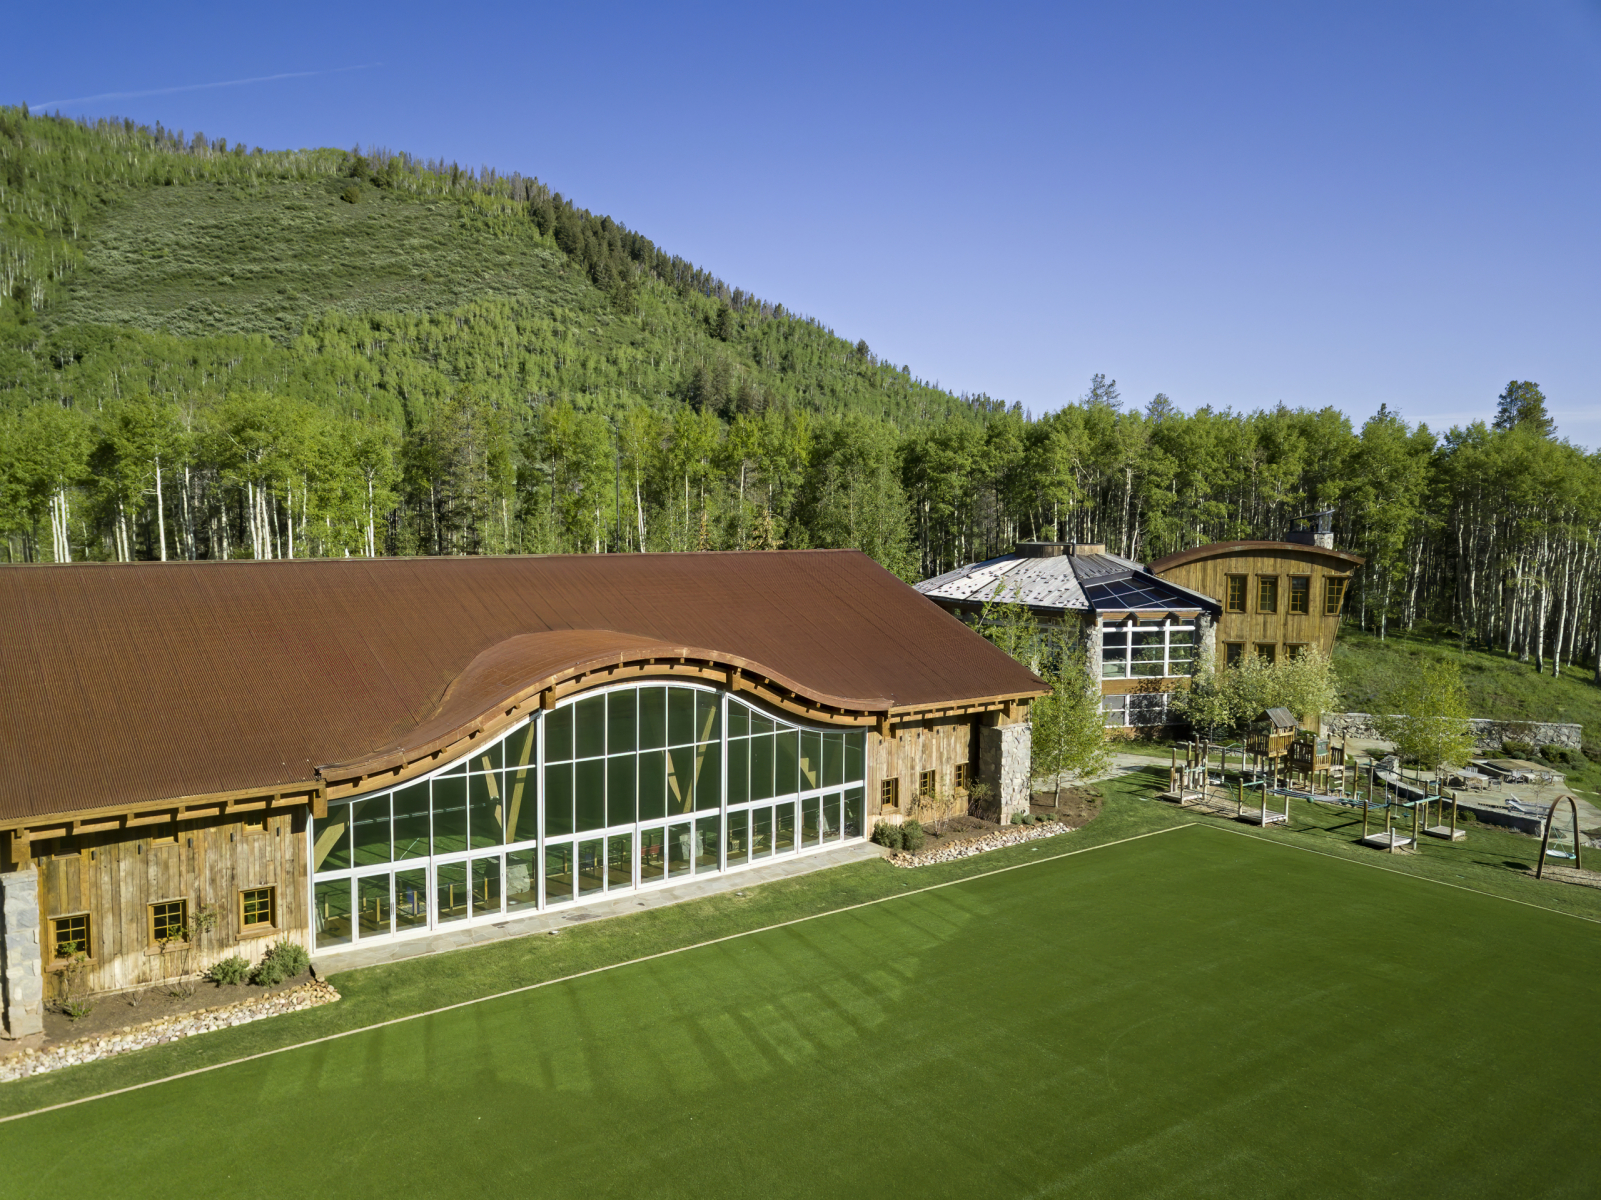 Vail-MLS-Final-Images-reordered-Malia-008-scaled